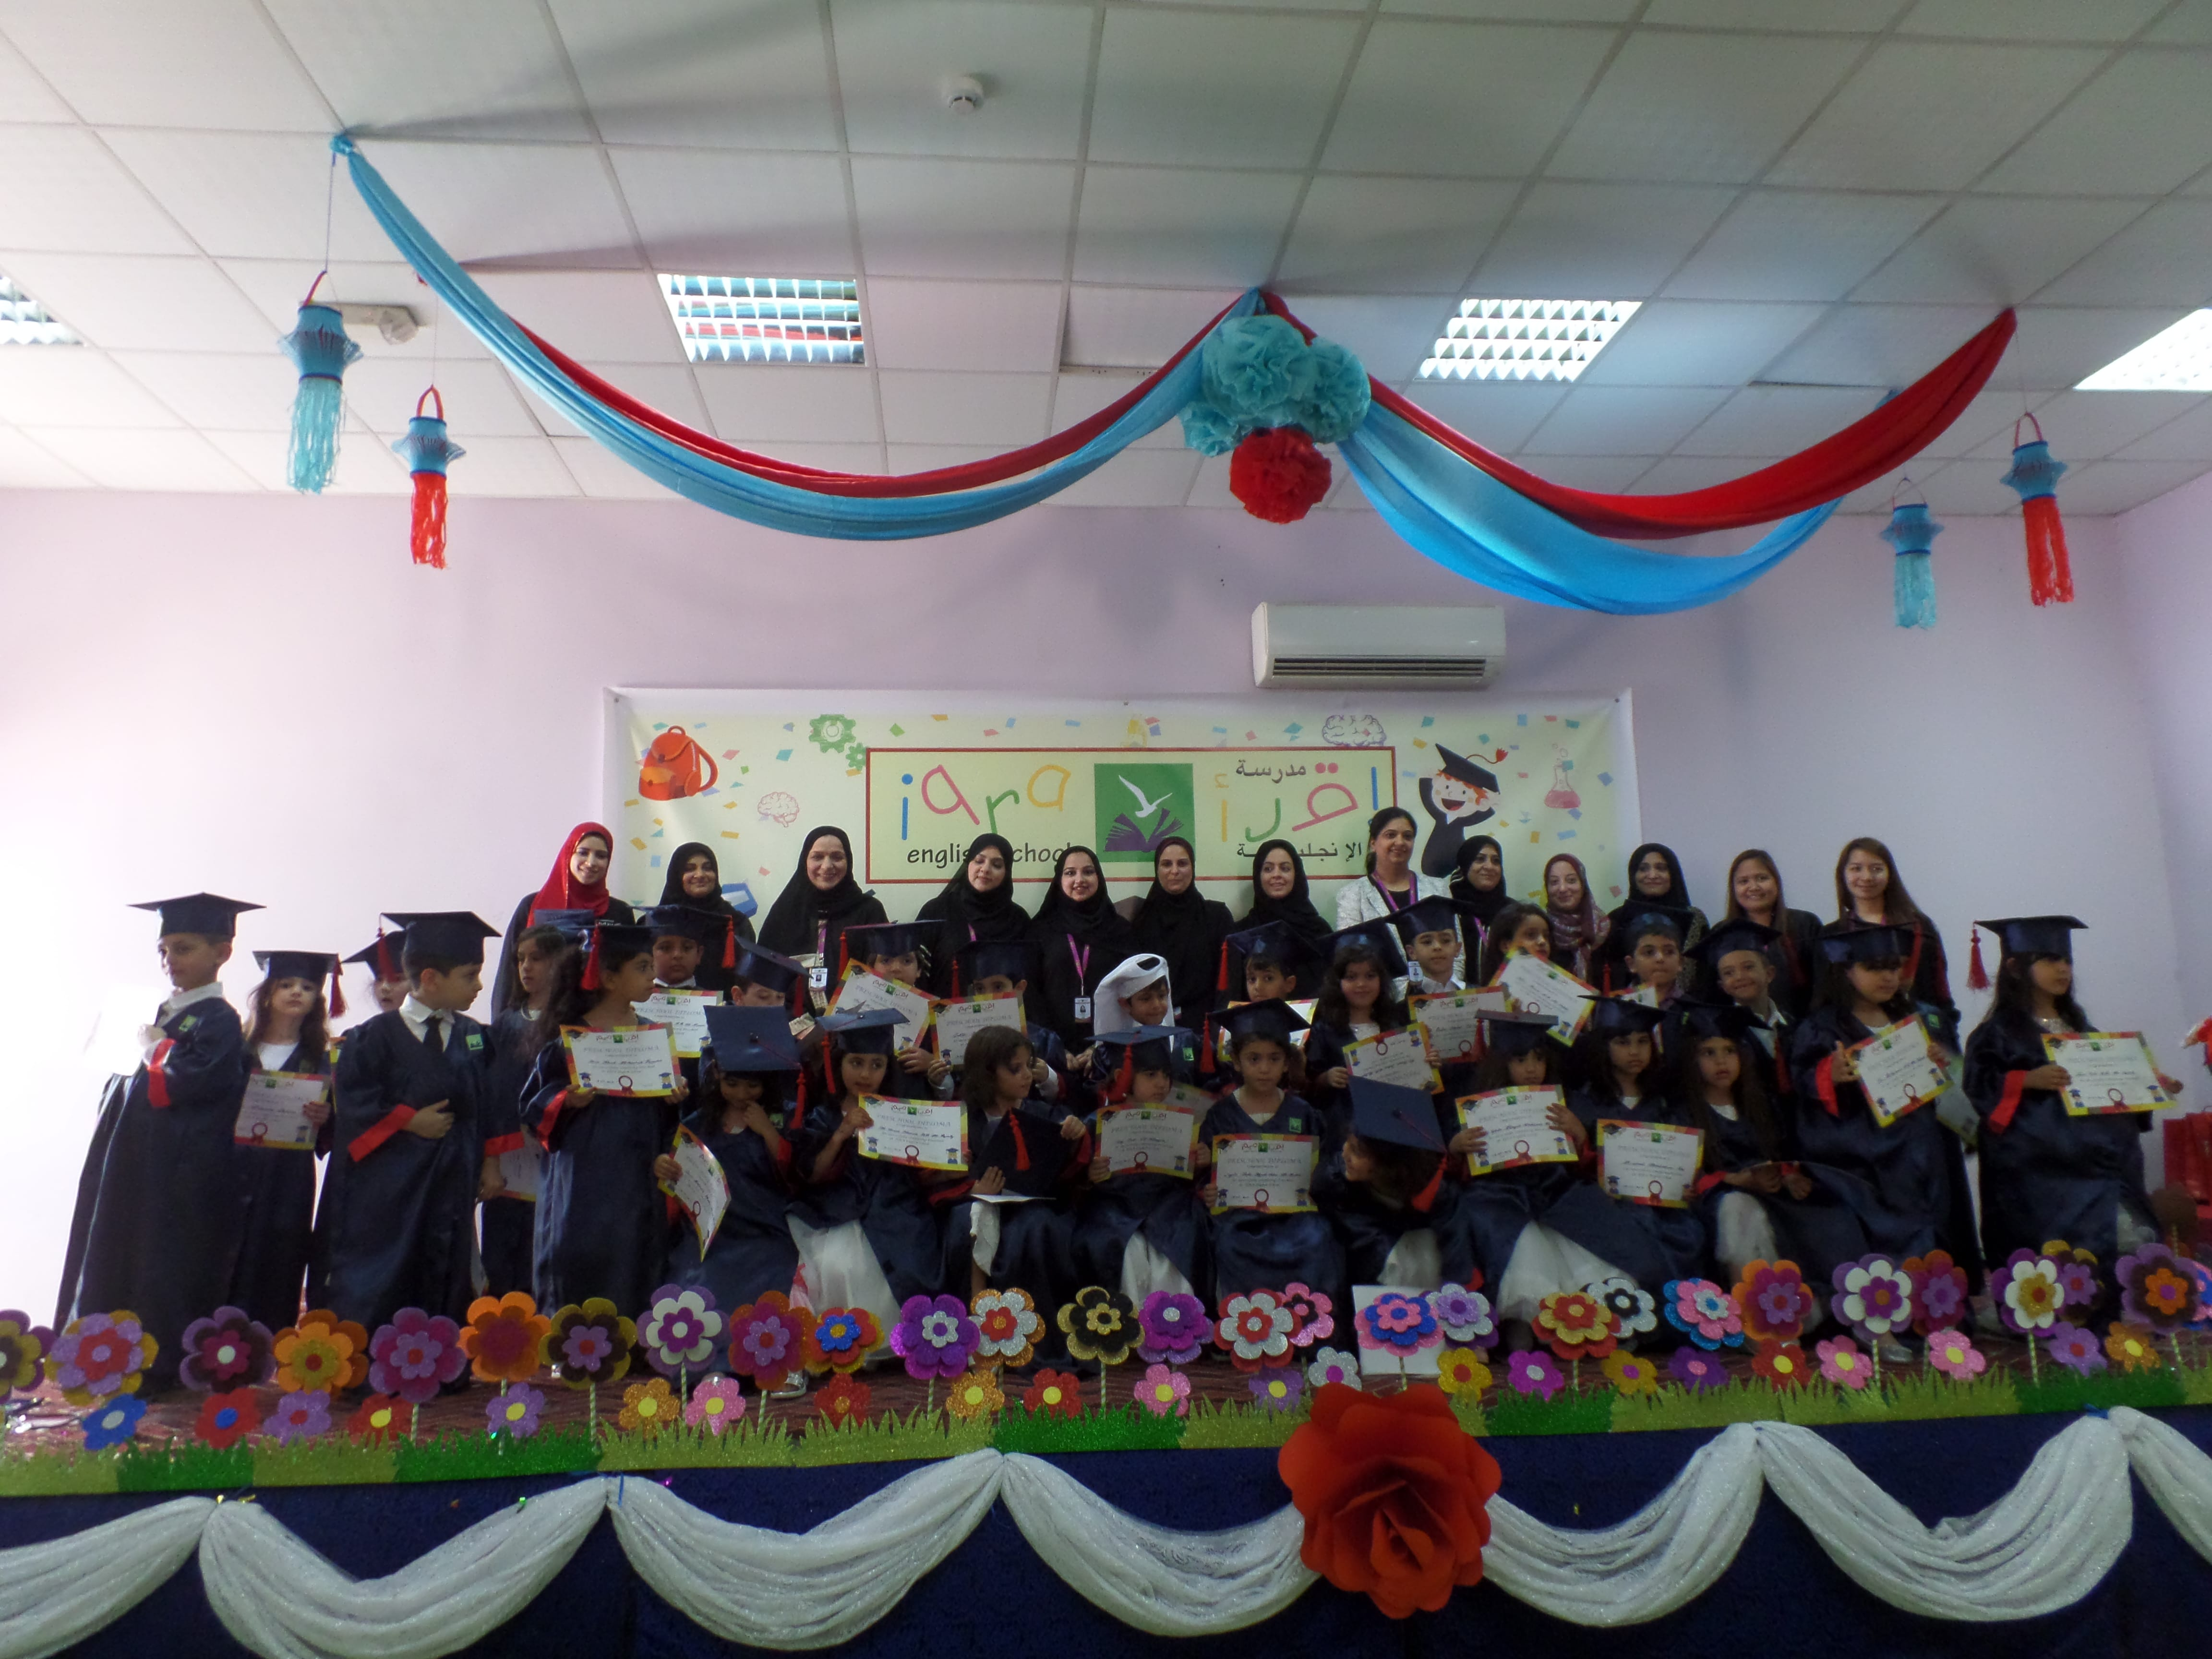 Graduation Ceremony Reception: Reception Graduation 2016/2017